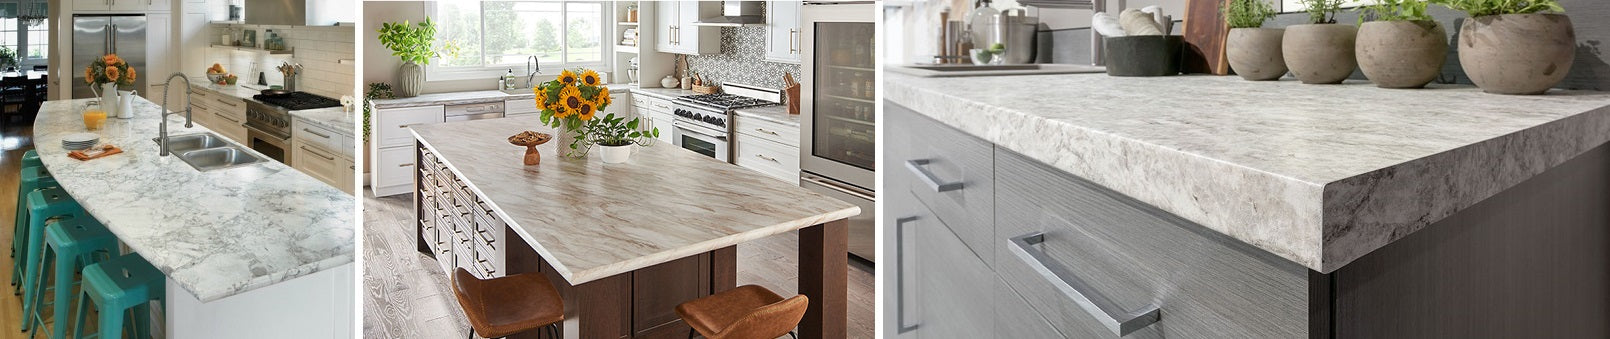 Laminate Countertops, the least expensive option for counter tops still